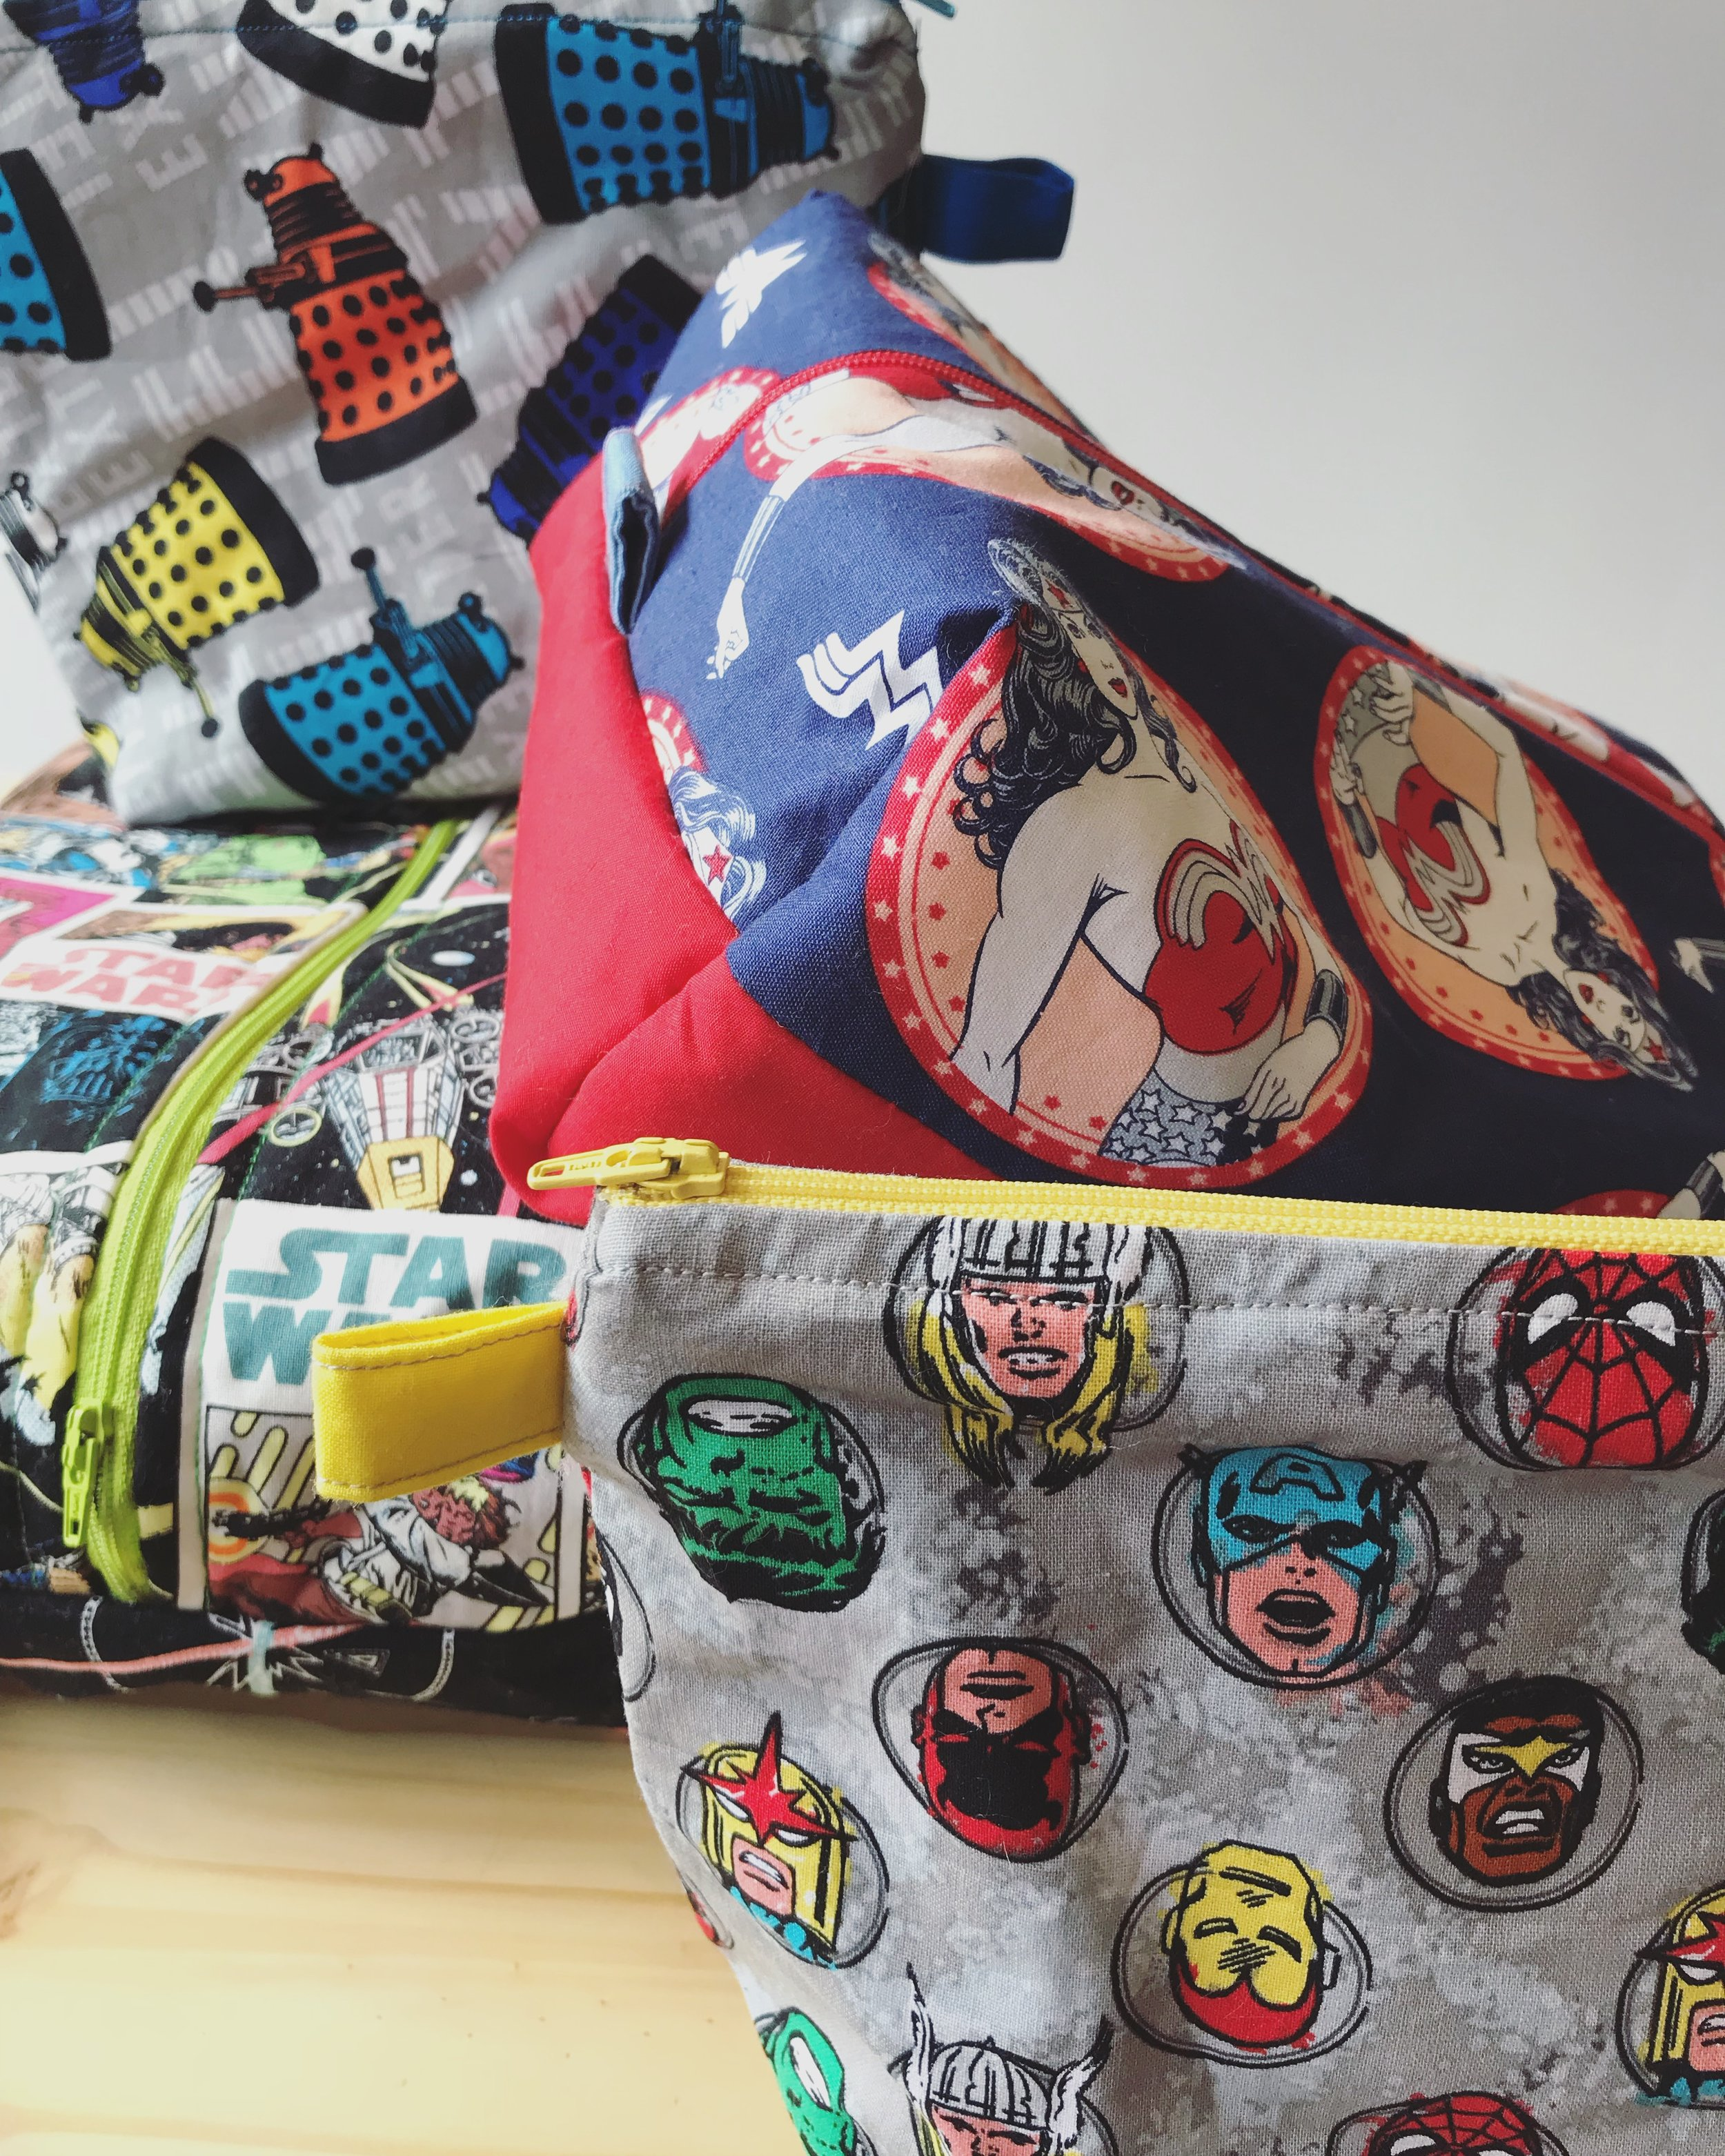 Handmade Project bags by jackie valdez Image © firefly fiber arts studio